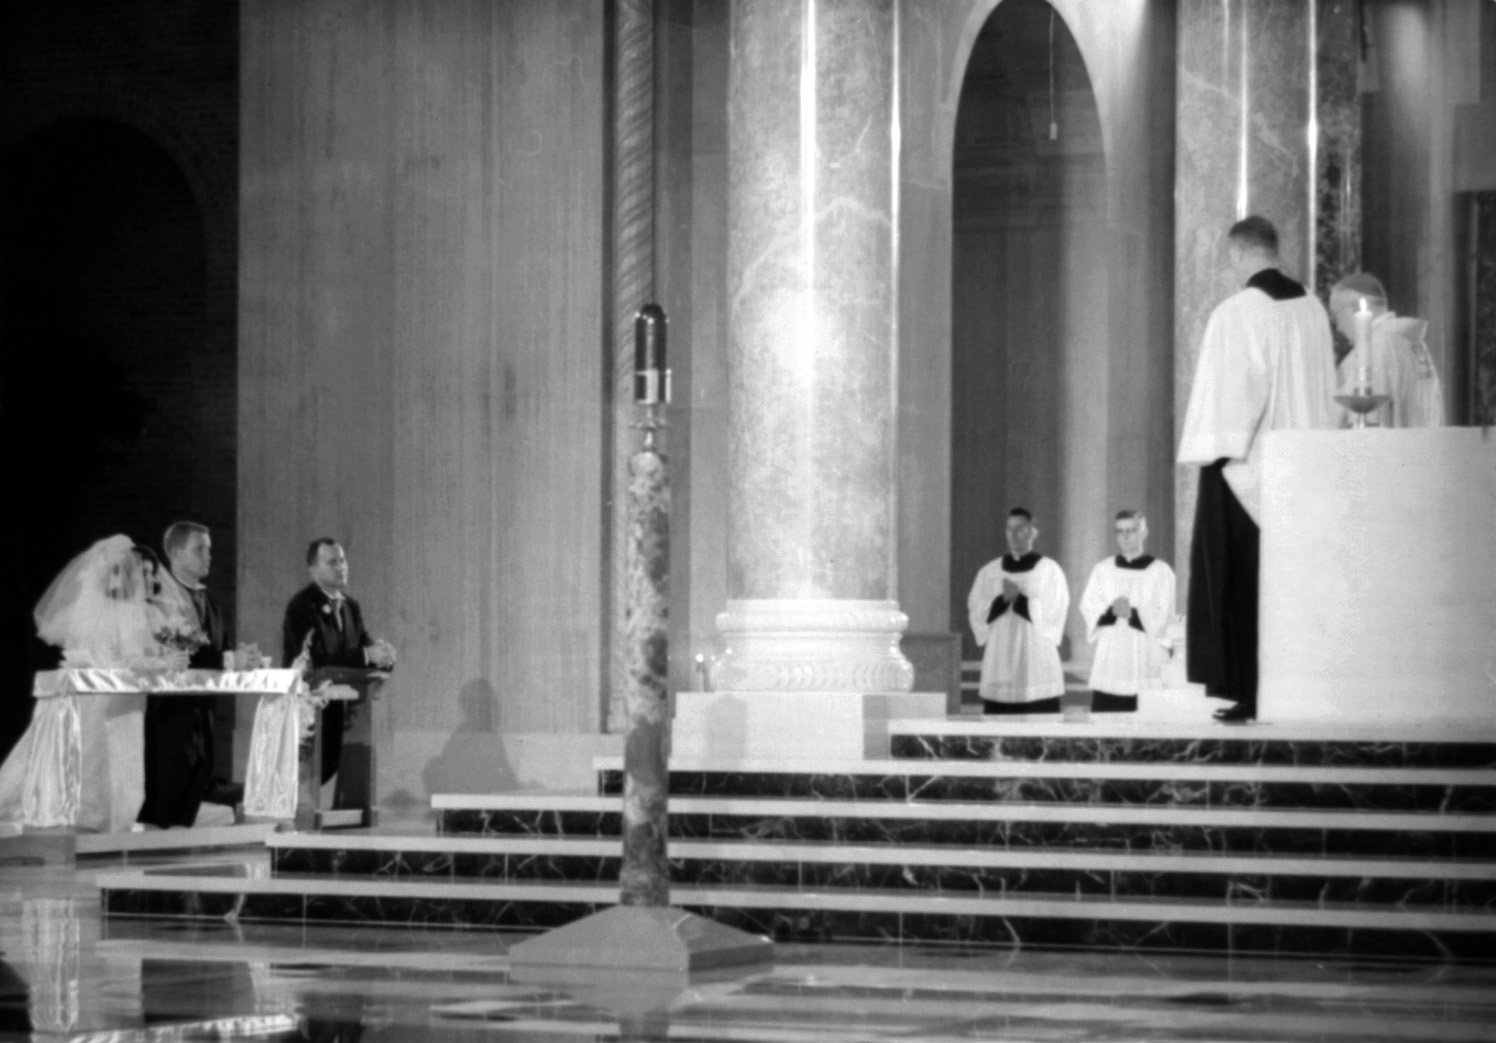 Nugent–Johnson wedding at the National Shrine of the Immaculate Conception, Washington, D.C., in August, 1966.